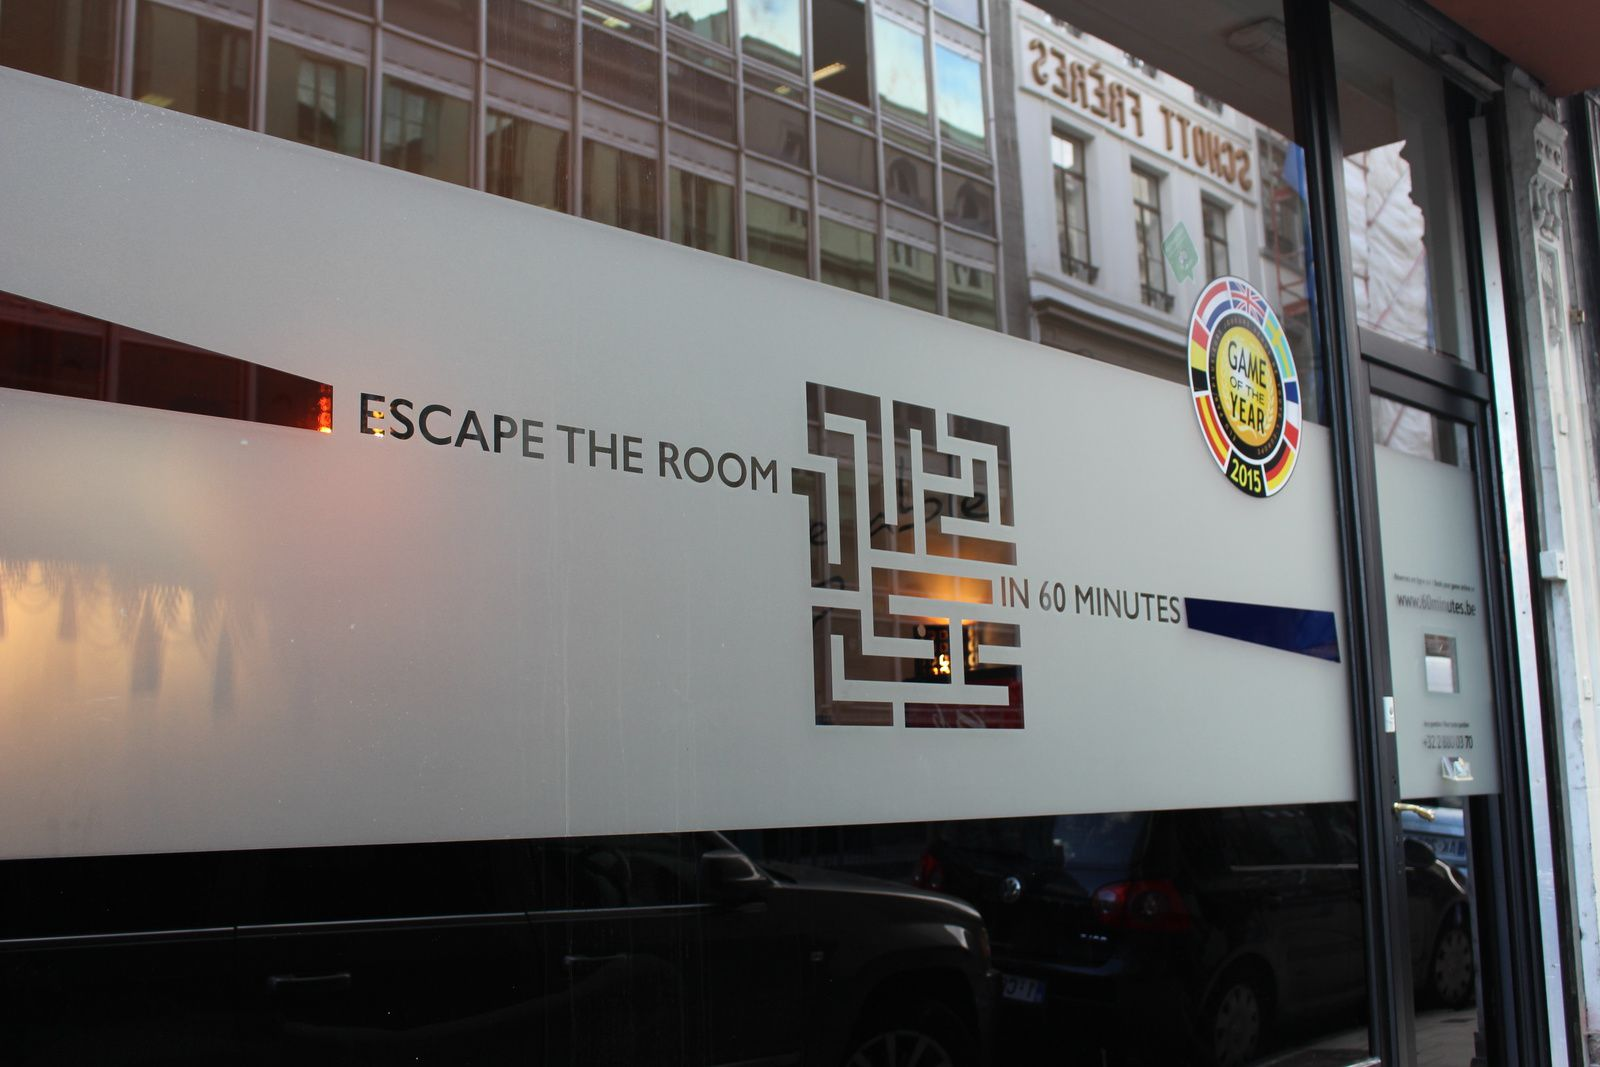 Escape The Room in 60 minutes !